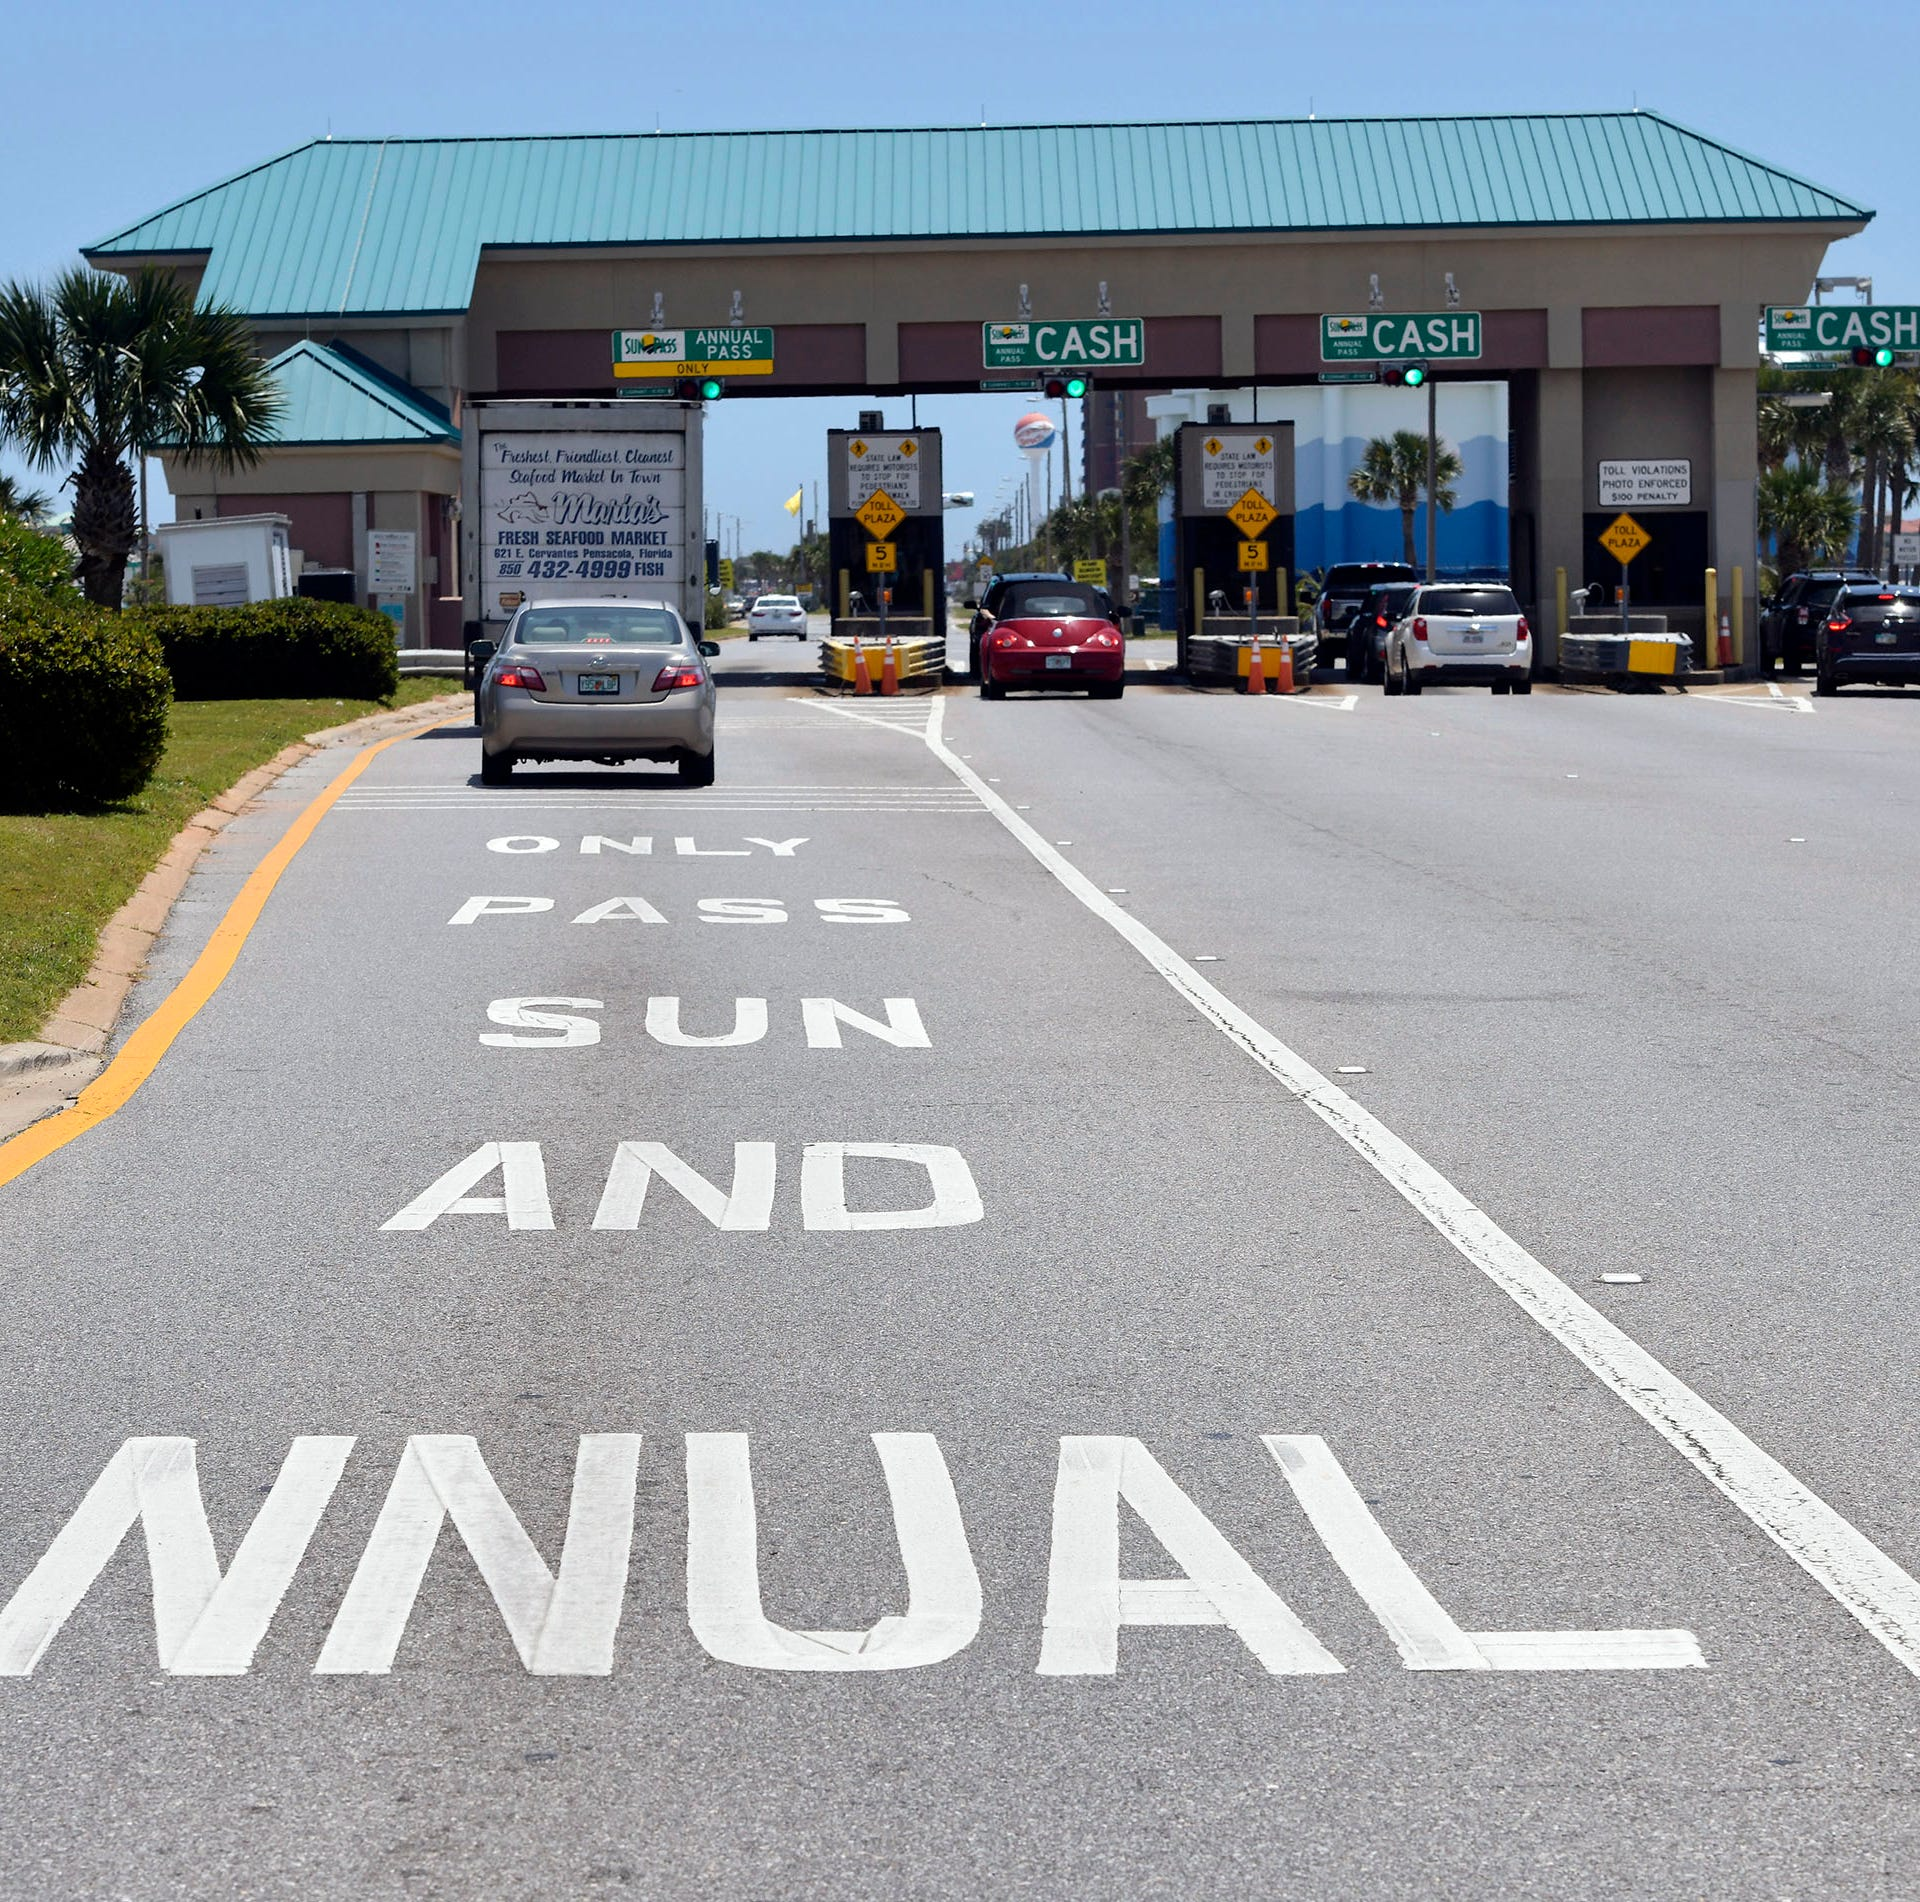 More SunPass lanes coming to Pensacola Beach. Will it help alleviate traffic?